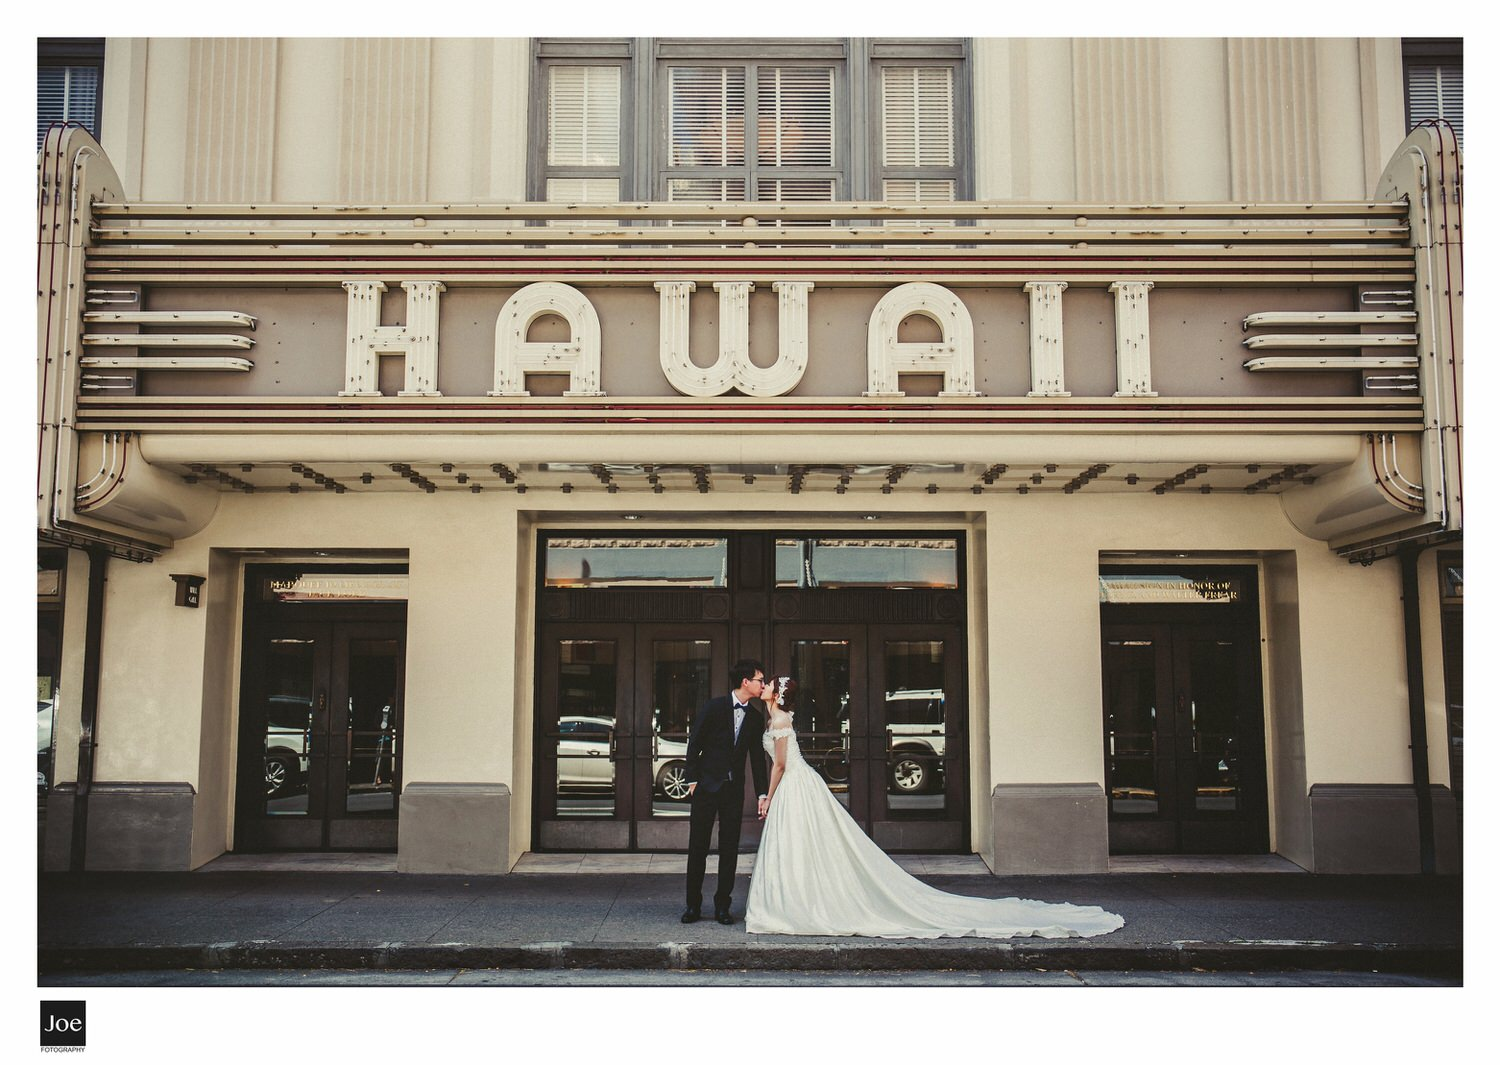 025-hawaii-theatre-pre-wedding-tiffany-tony-joe-fotography.jpg